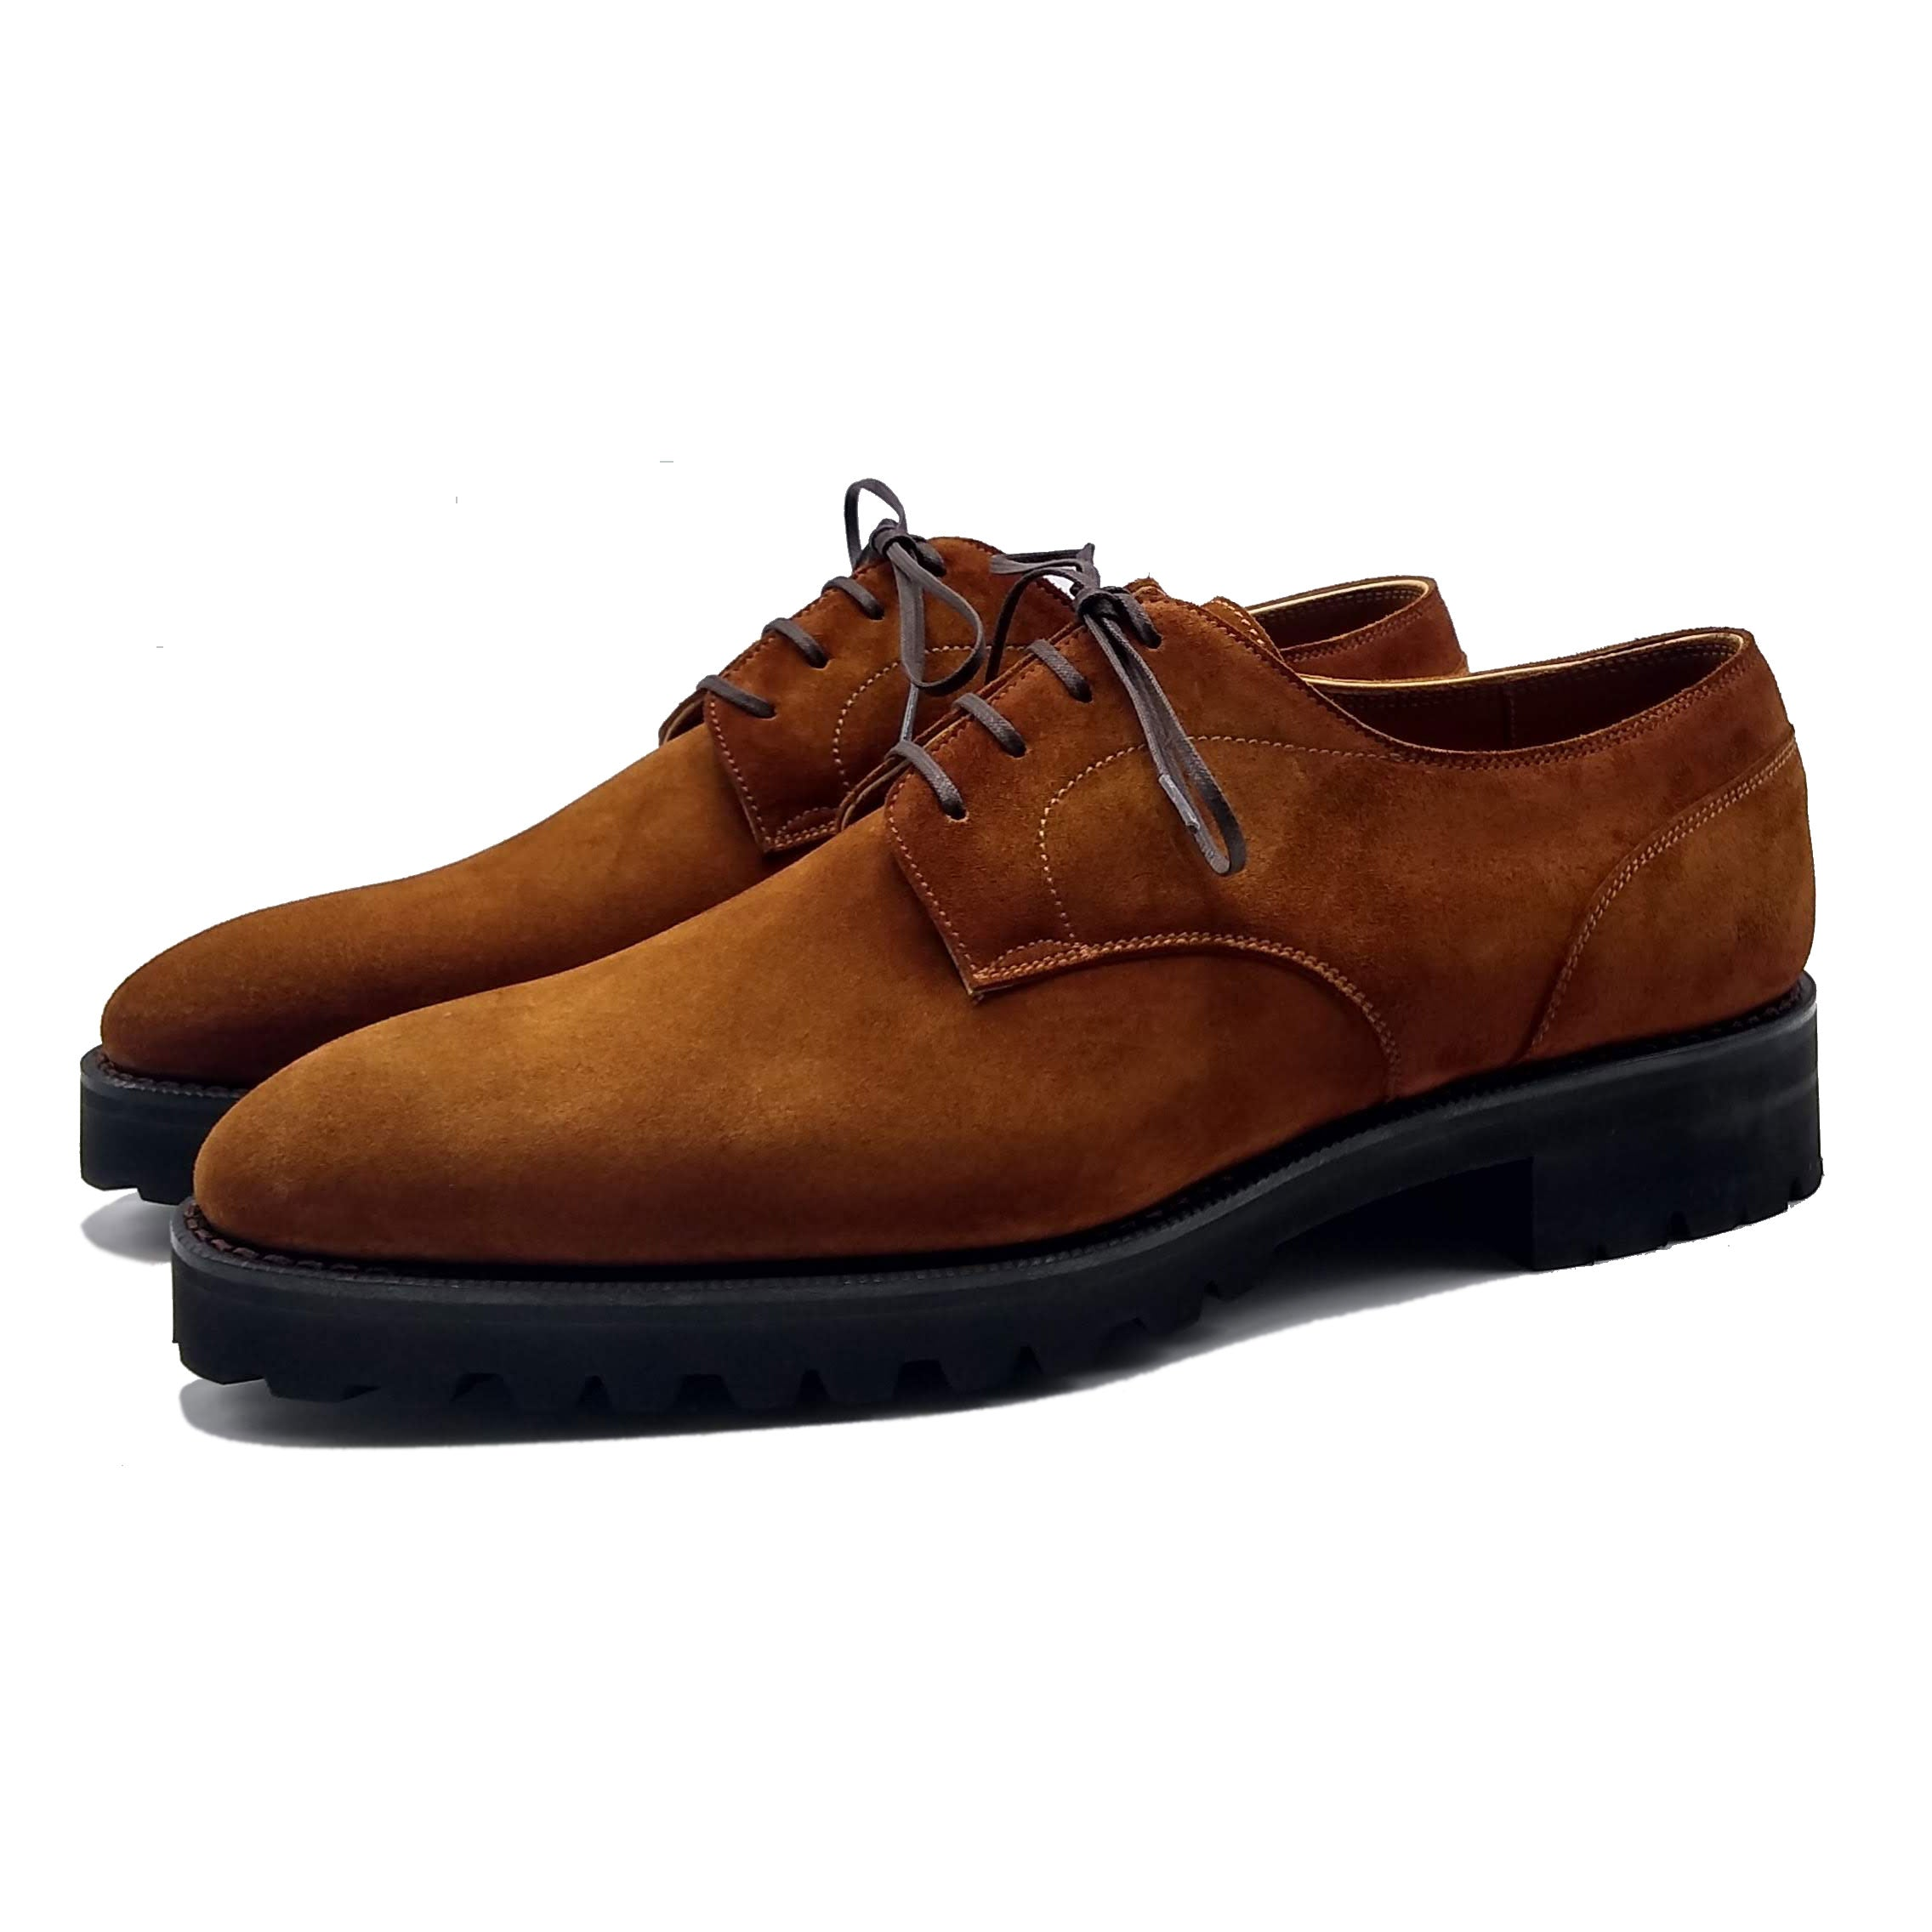 Derby simple in suede made in Spain by Norman Vilalta